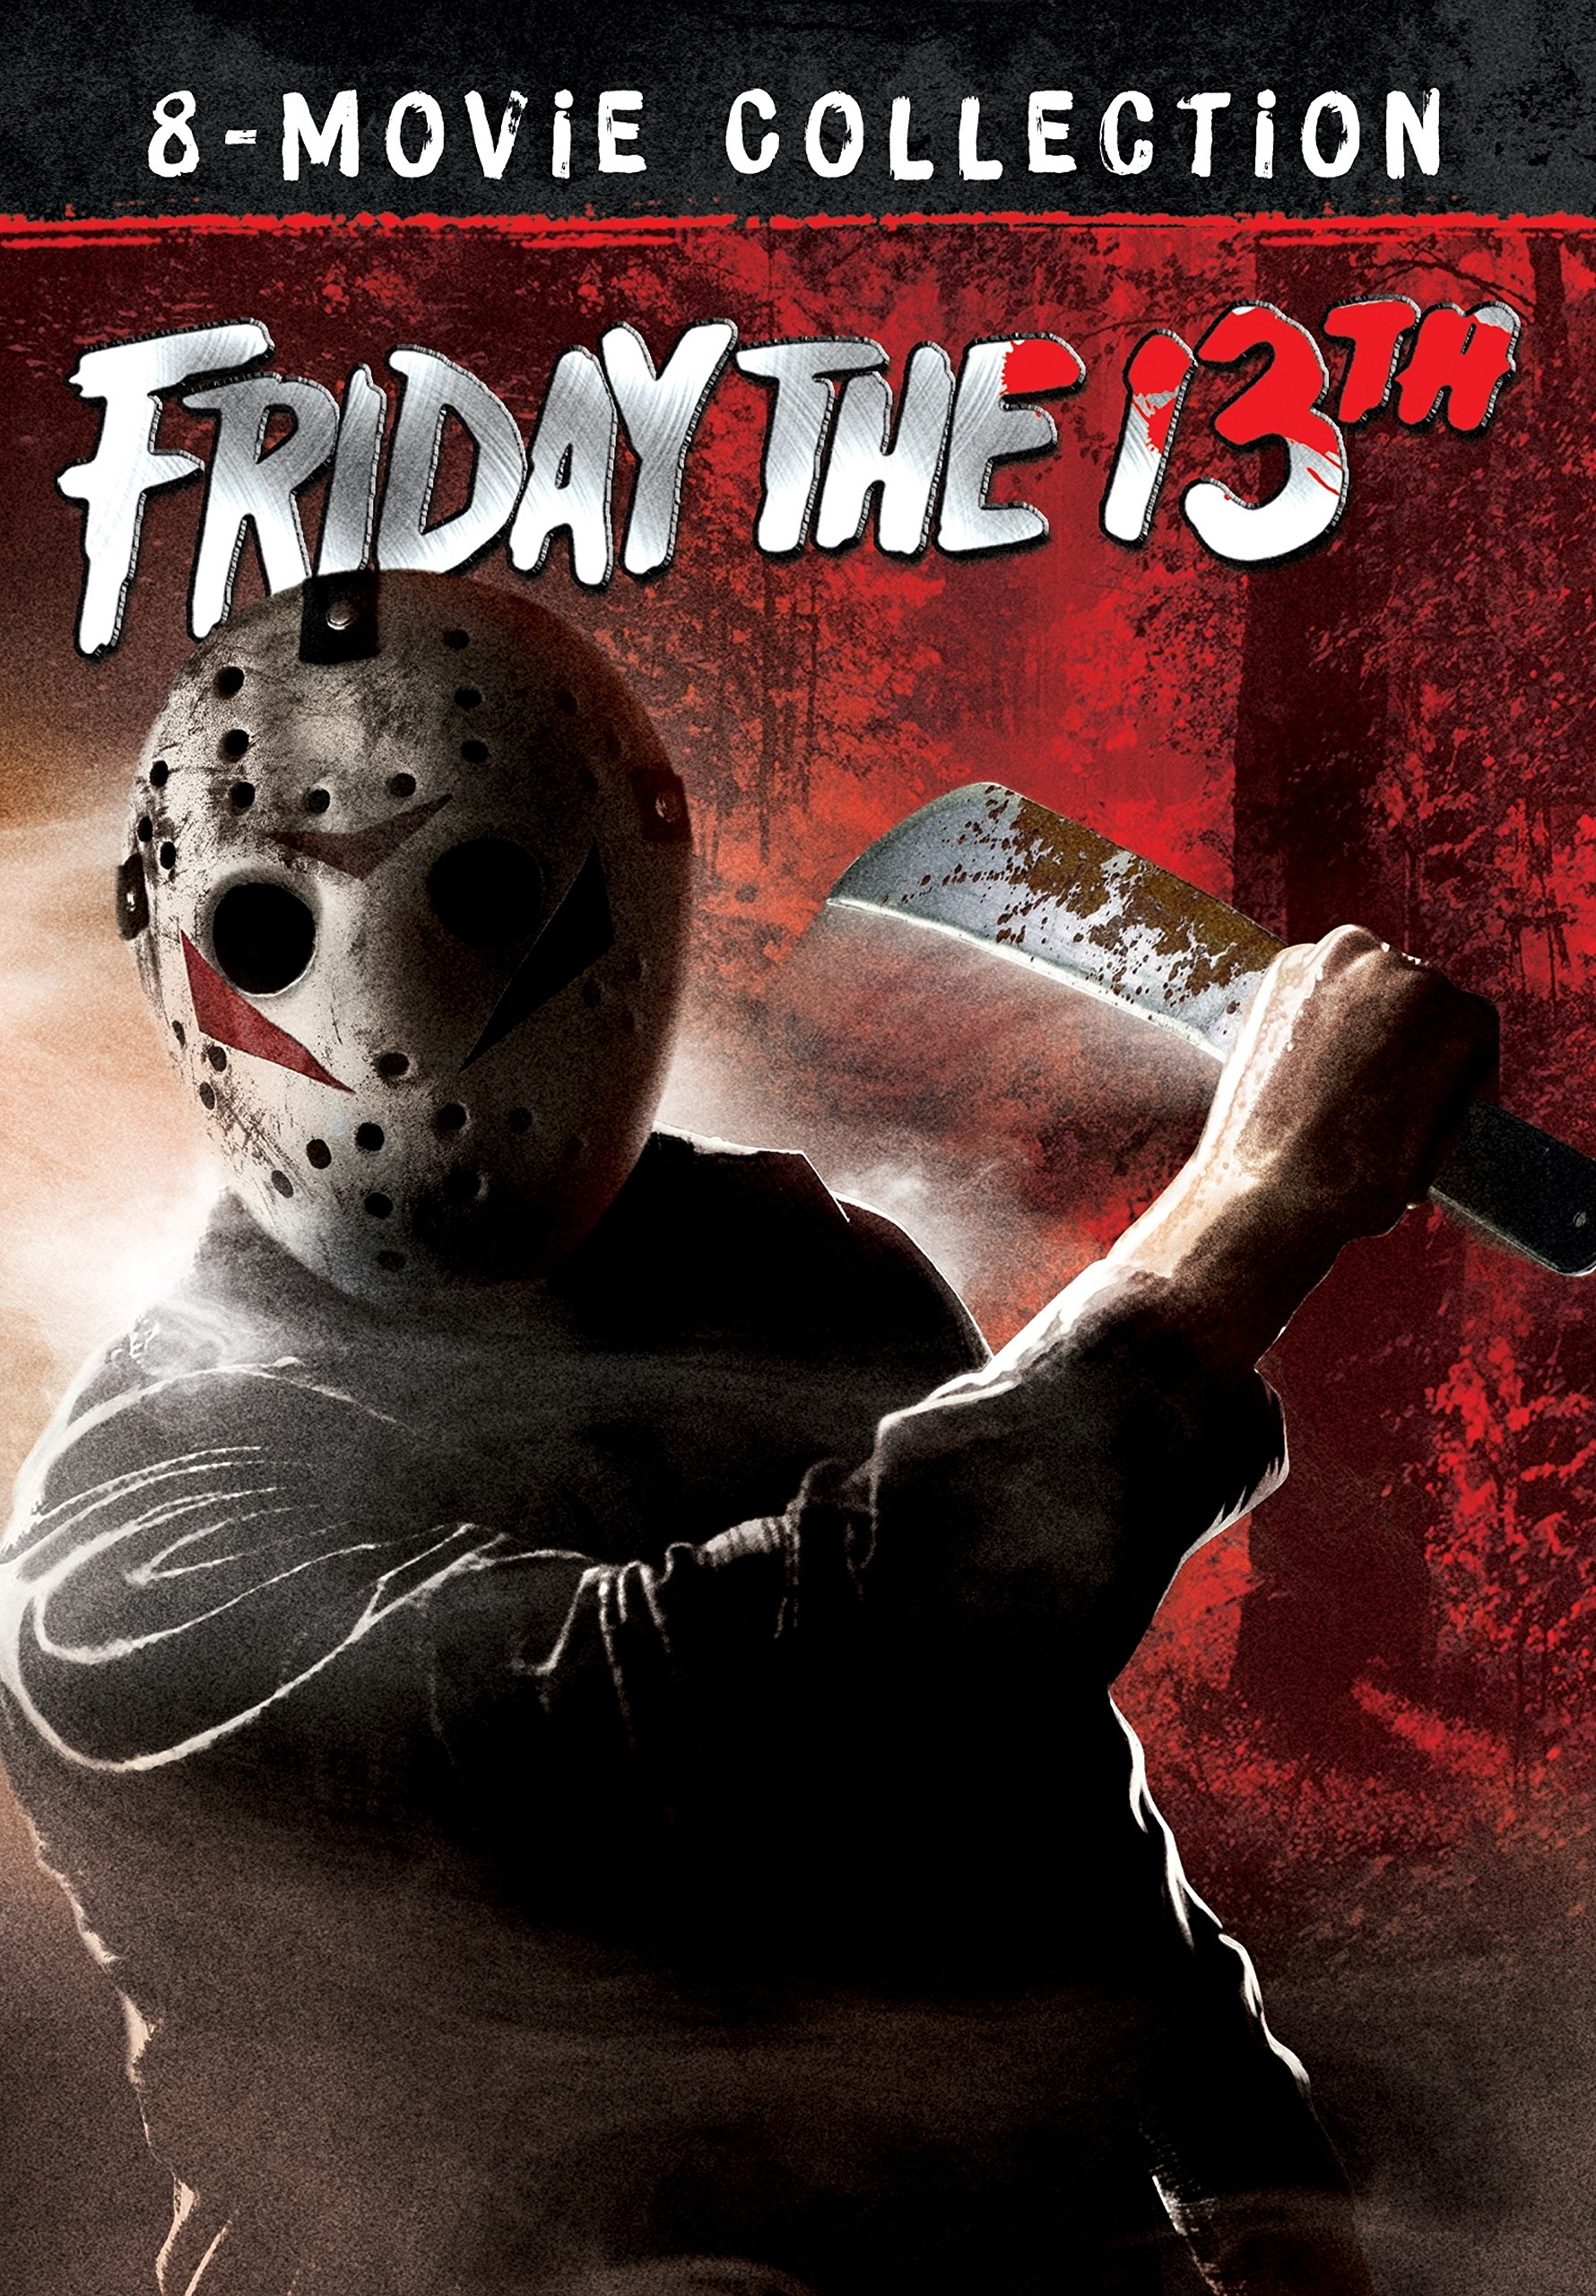 DVD : Friday the 13th: 8-Movie Collection (Gift Set, Widescreen, AC-3, Dolby, Dubbed)